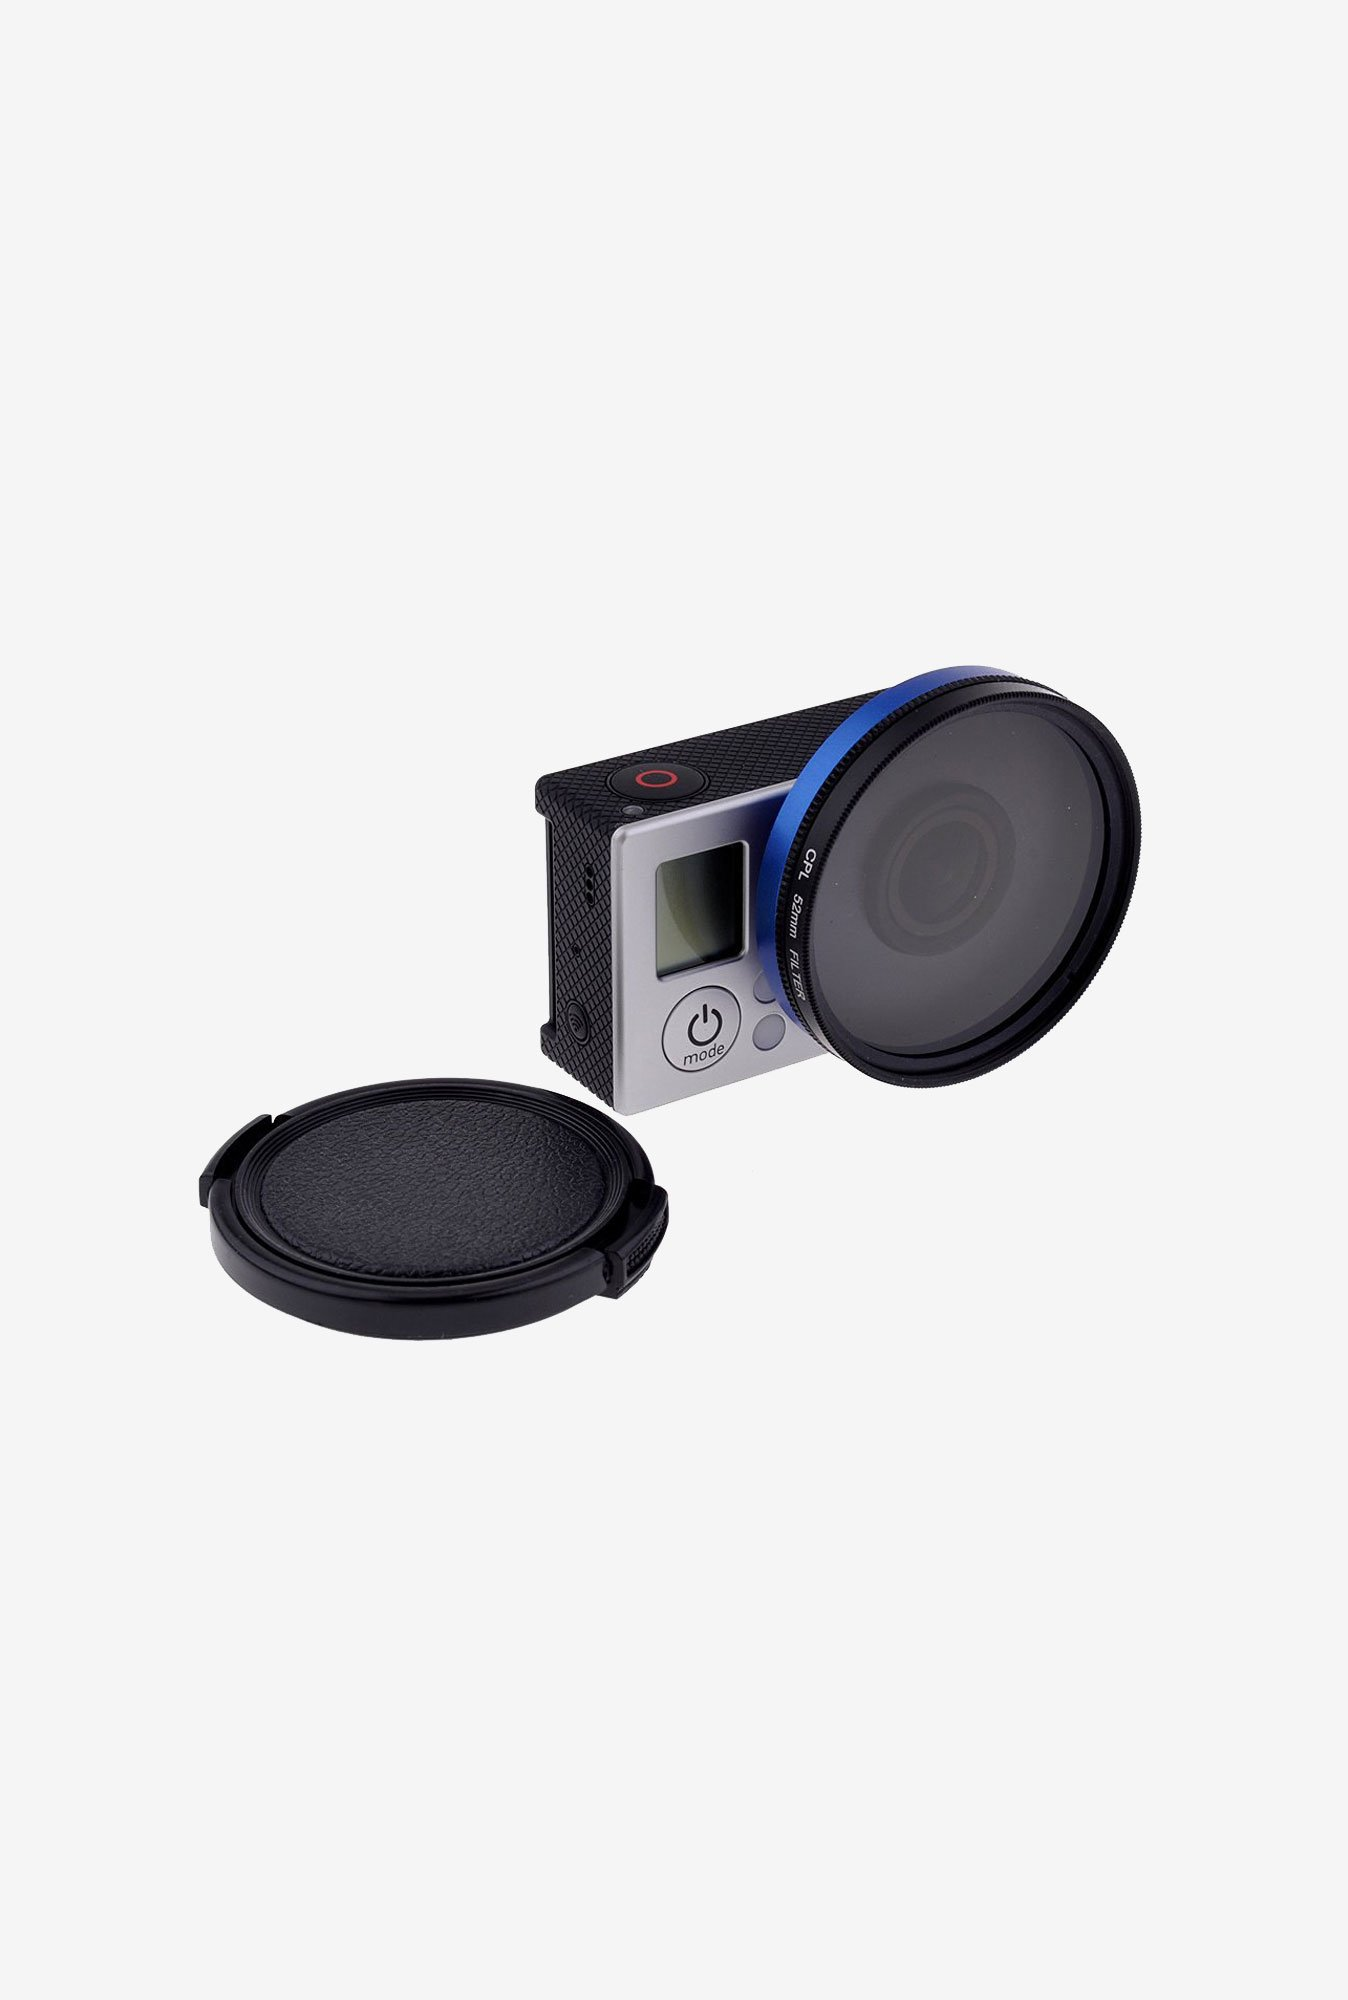 Neewer 52Mm CPL Filter Set For Gopro Hero 3/3+/4 (Blue)